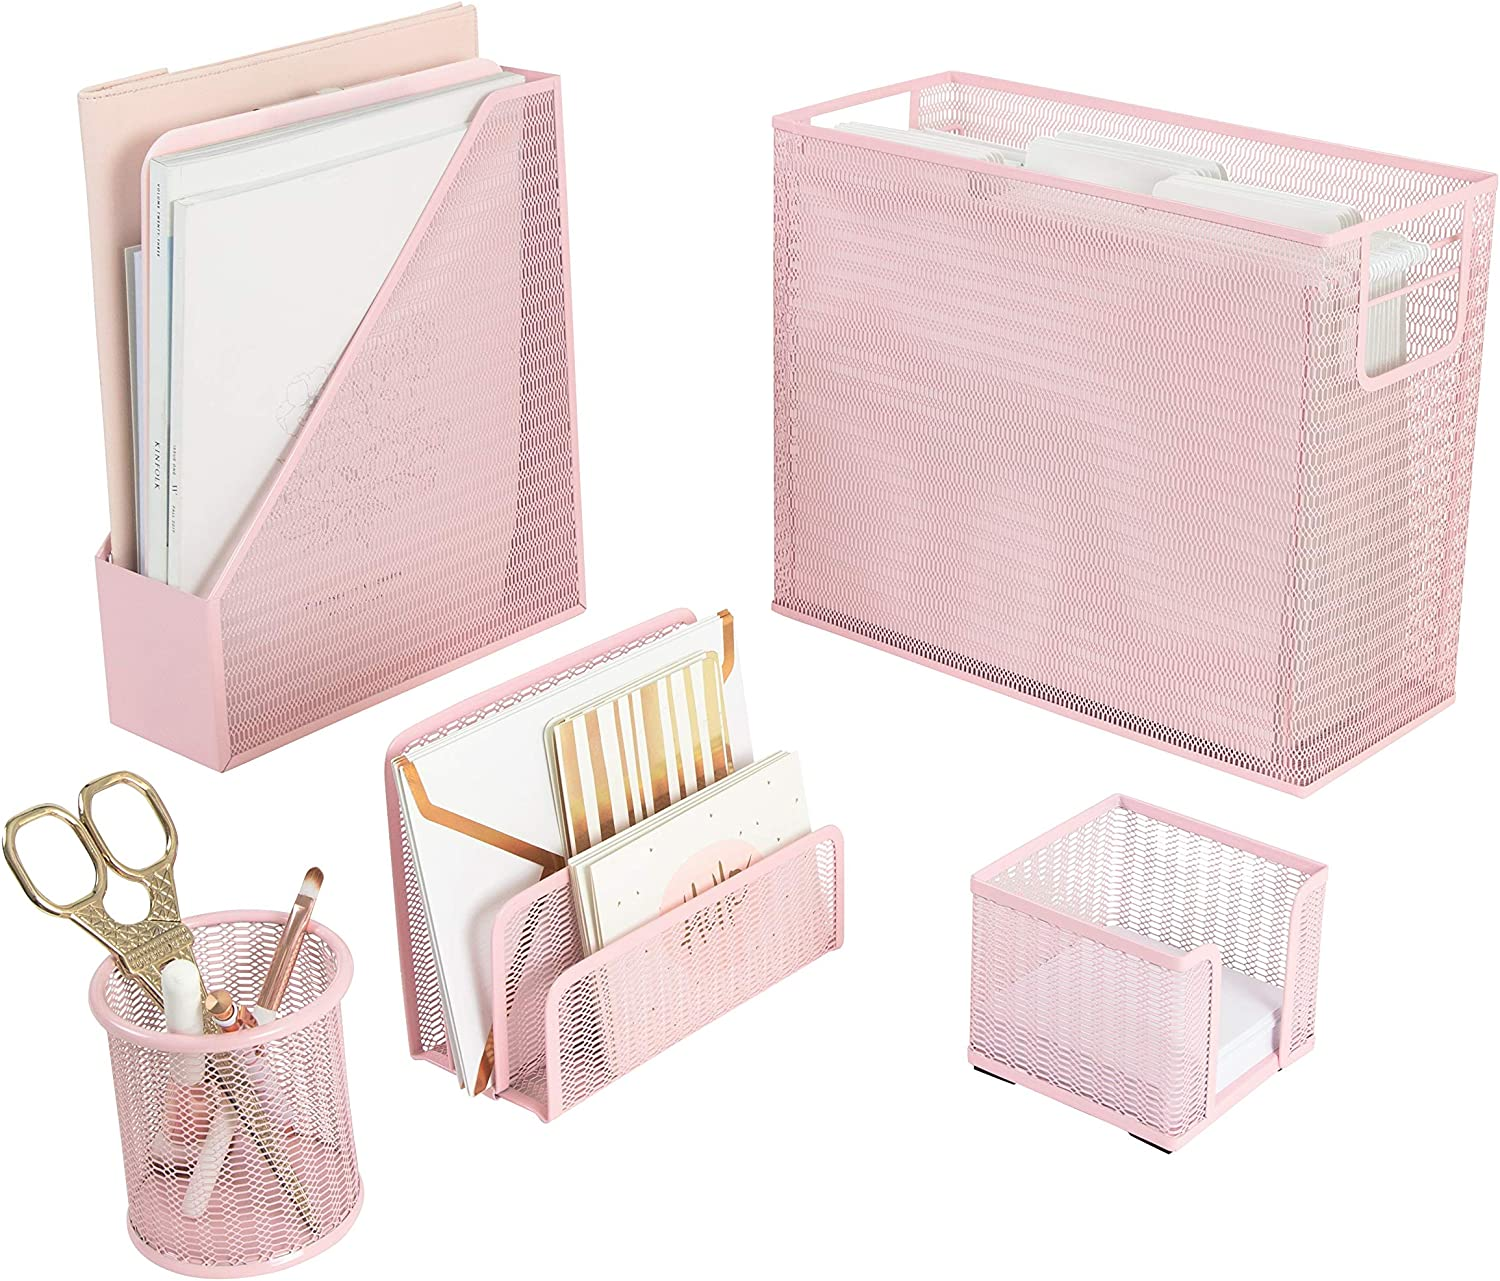 Blu Monaco 5 Piece Pink Office Supplies Desk Organizer Set - with Desktop Hanging File Organizer, Magazine Holder, Pen Cup, Sticky Note Holder, Letter sorter - Pink Desk Accessories for Women Office